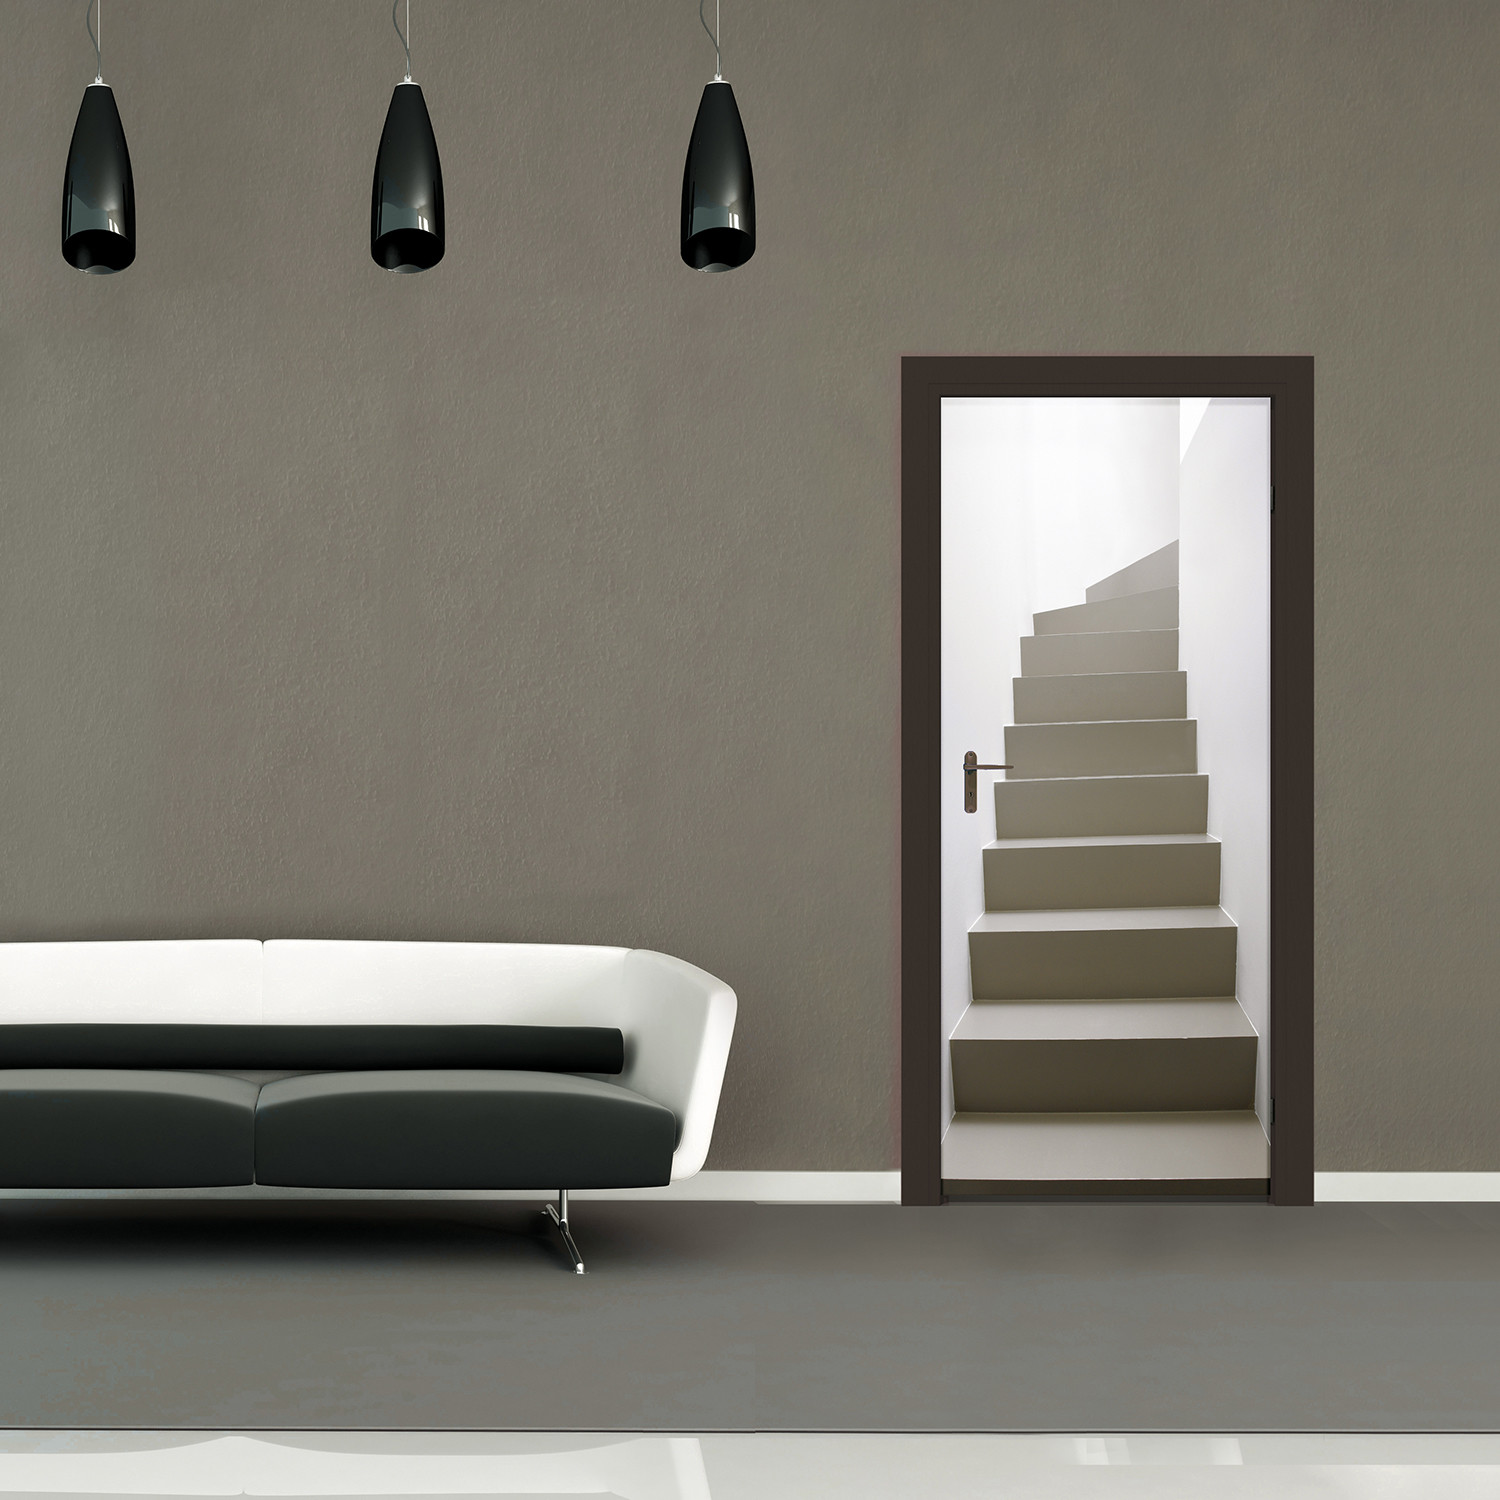 escape route door mural 1 wall murals touch of modern escape route door mural